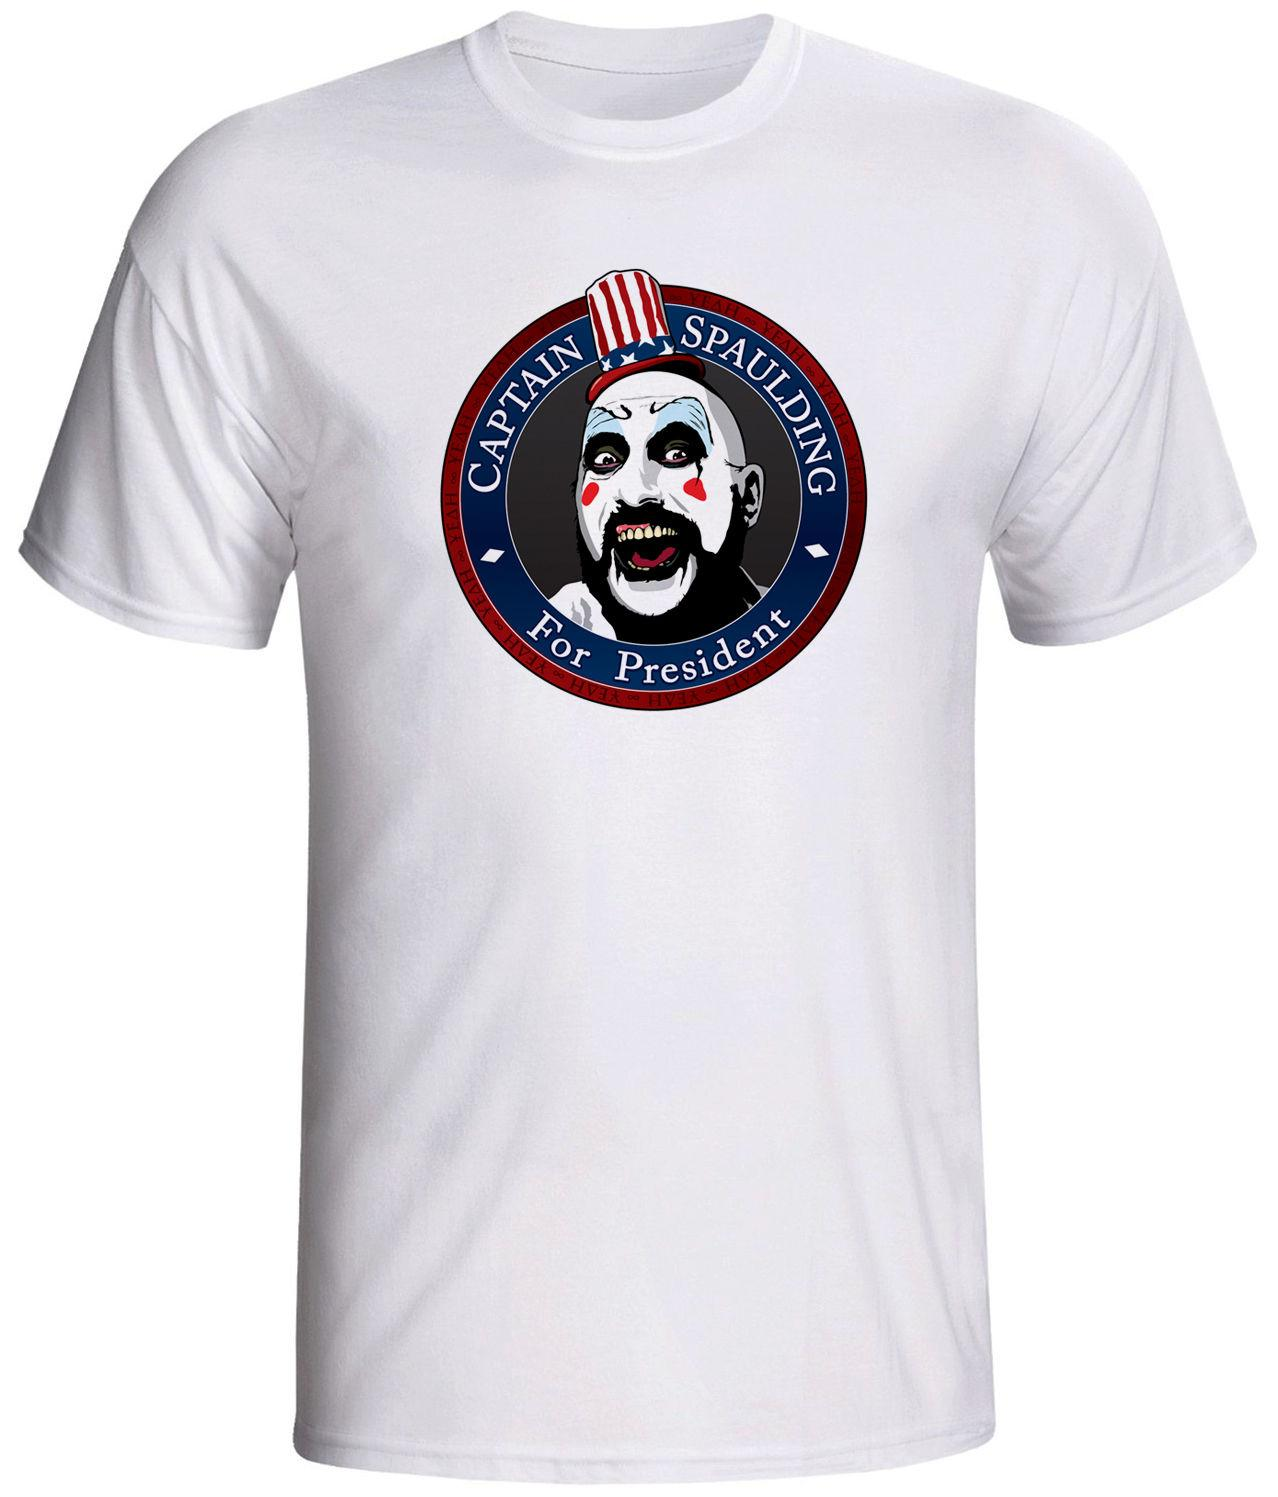 captain spaulding shirt the devils reject T-Shirt Casual Short Sleeve For Men Clothing Summer